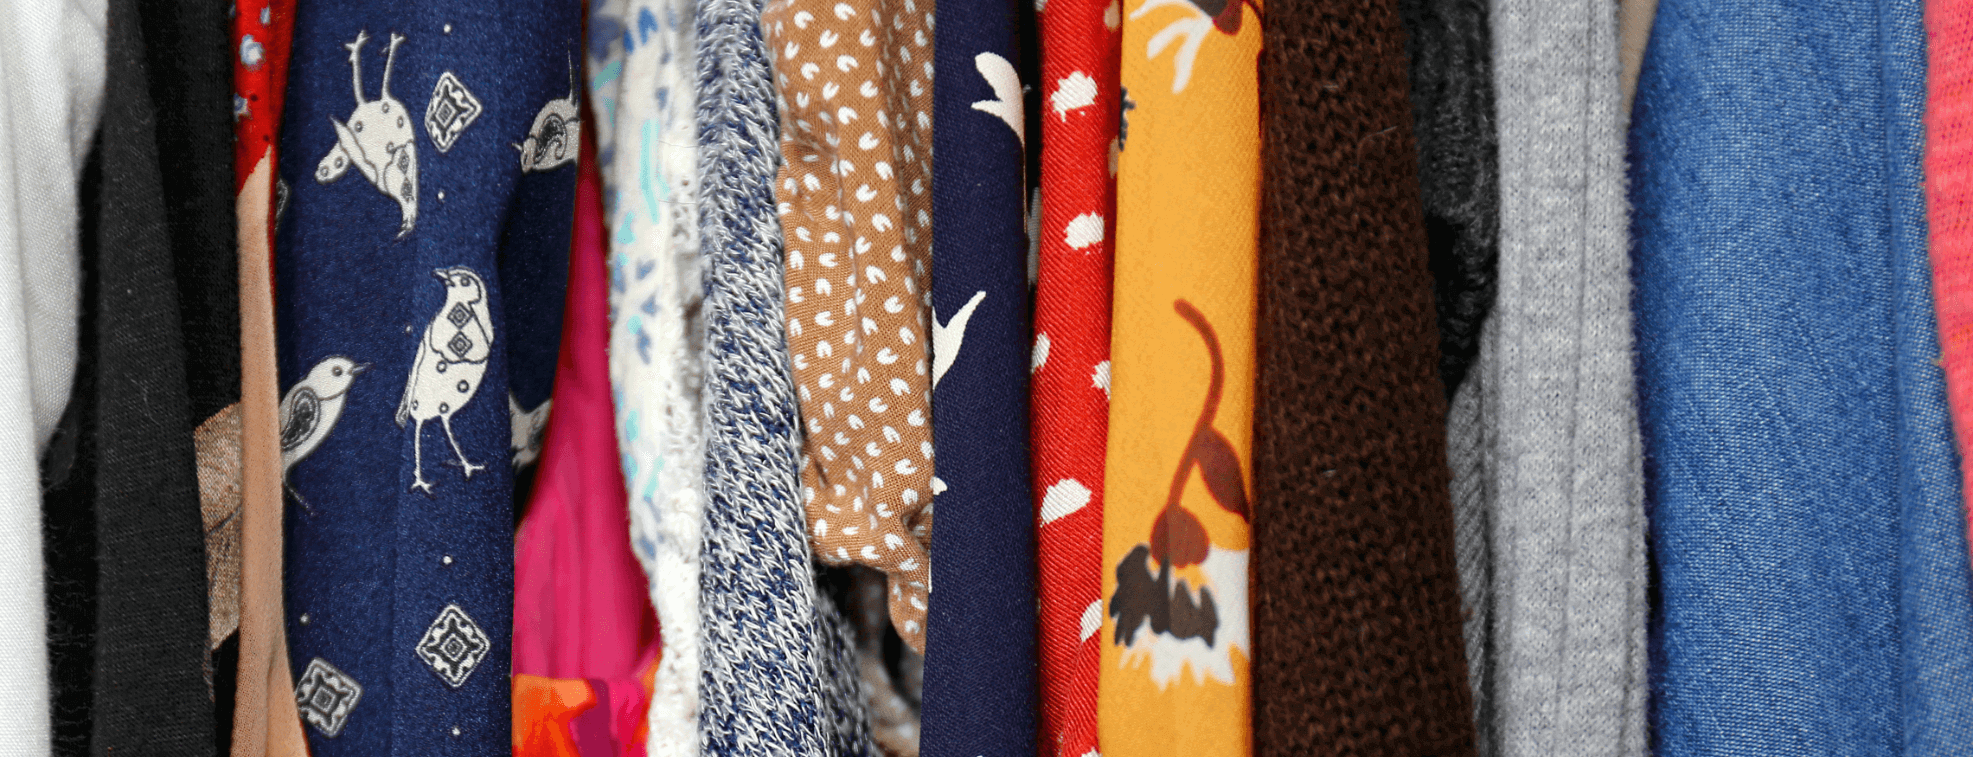 Clothes with different colorful patterns